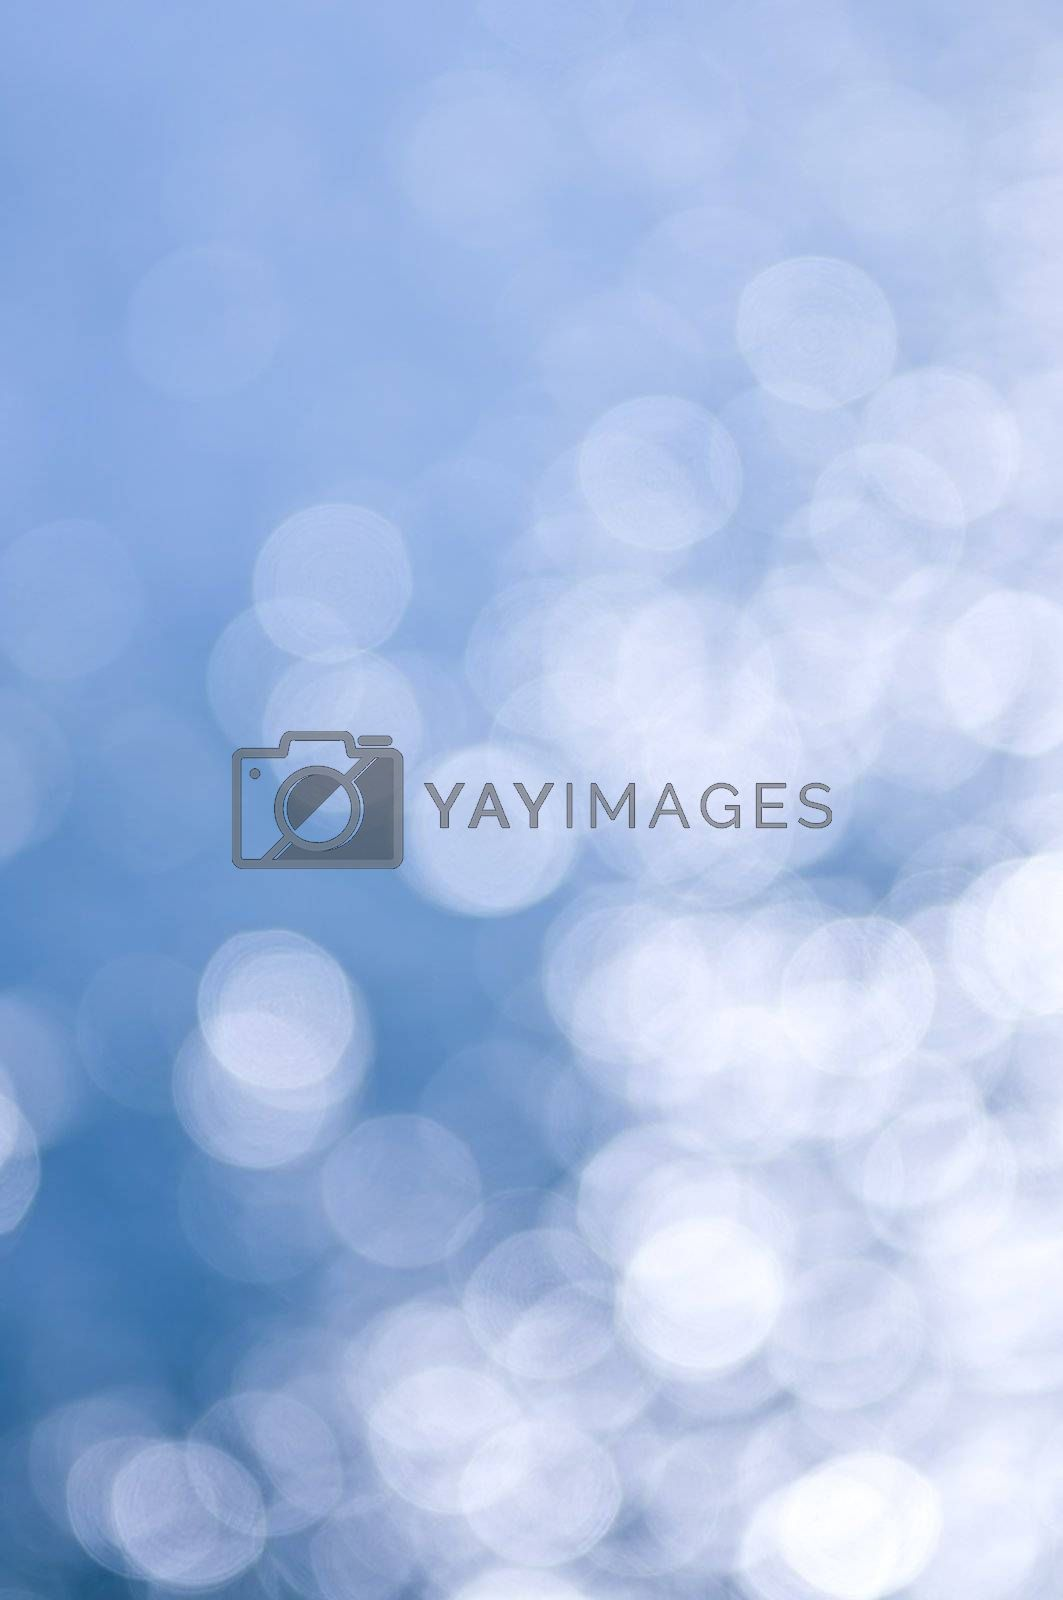 Out of focus bokeh background of blue water with sun reflections. Can be used as Christmas or winter backdrop.